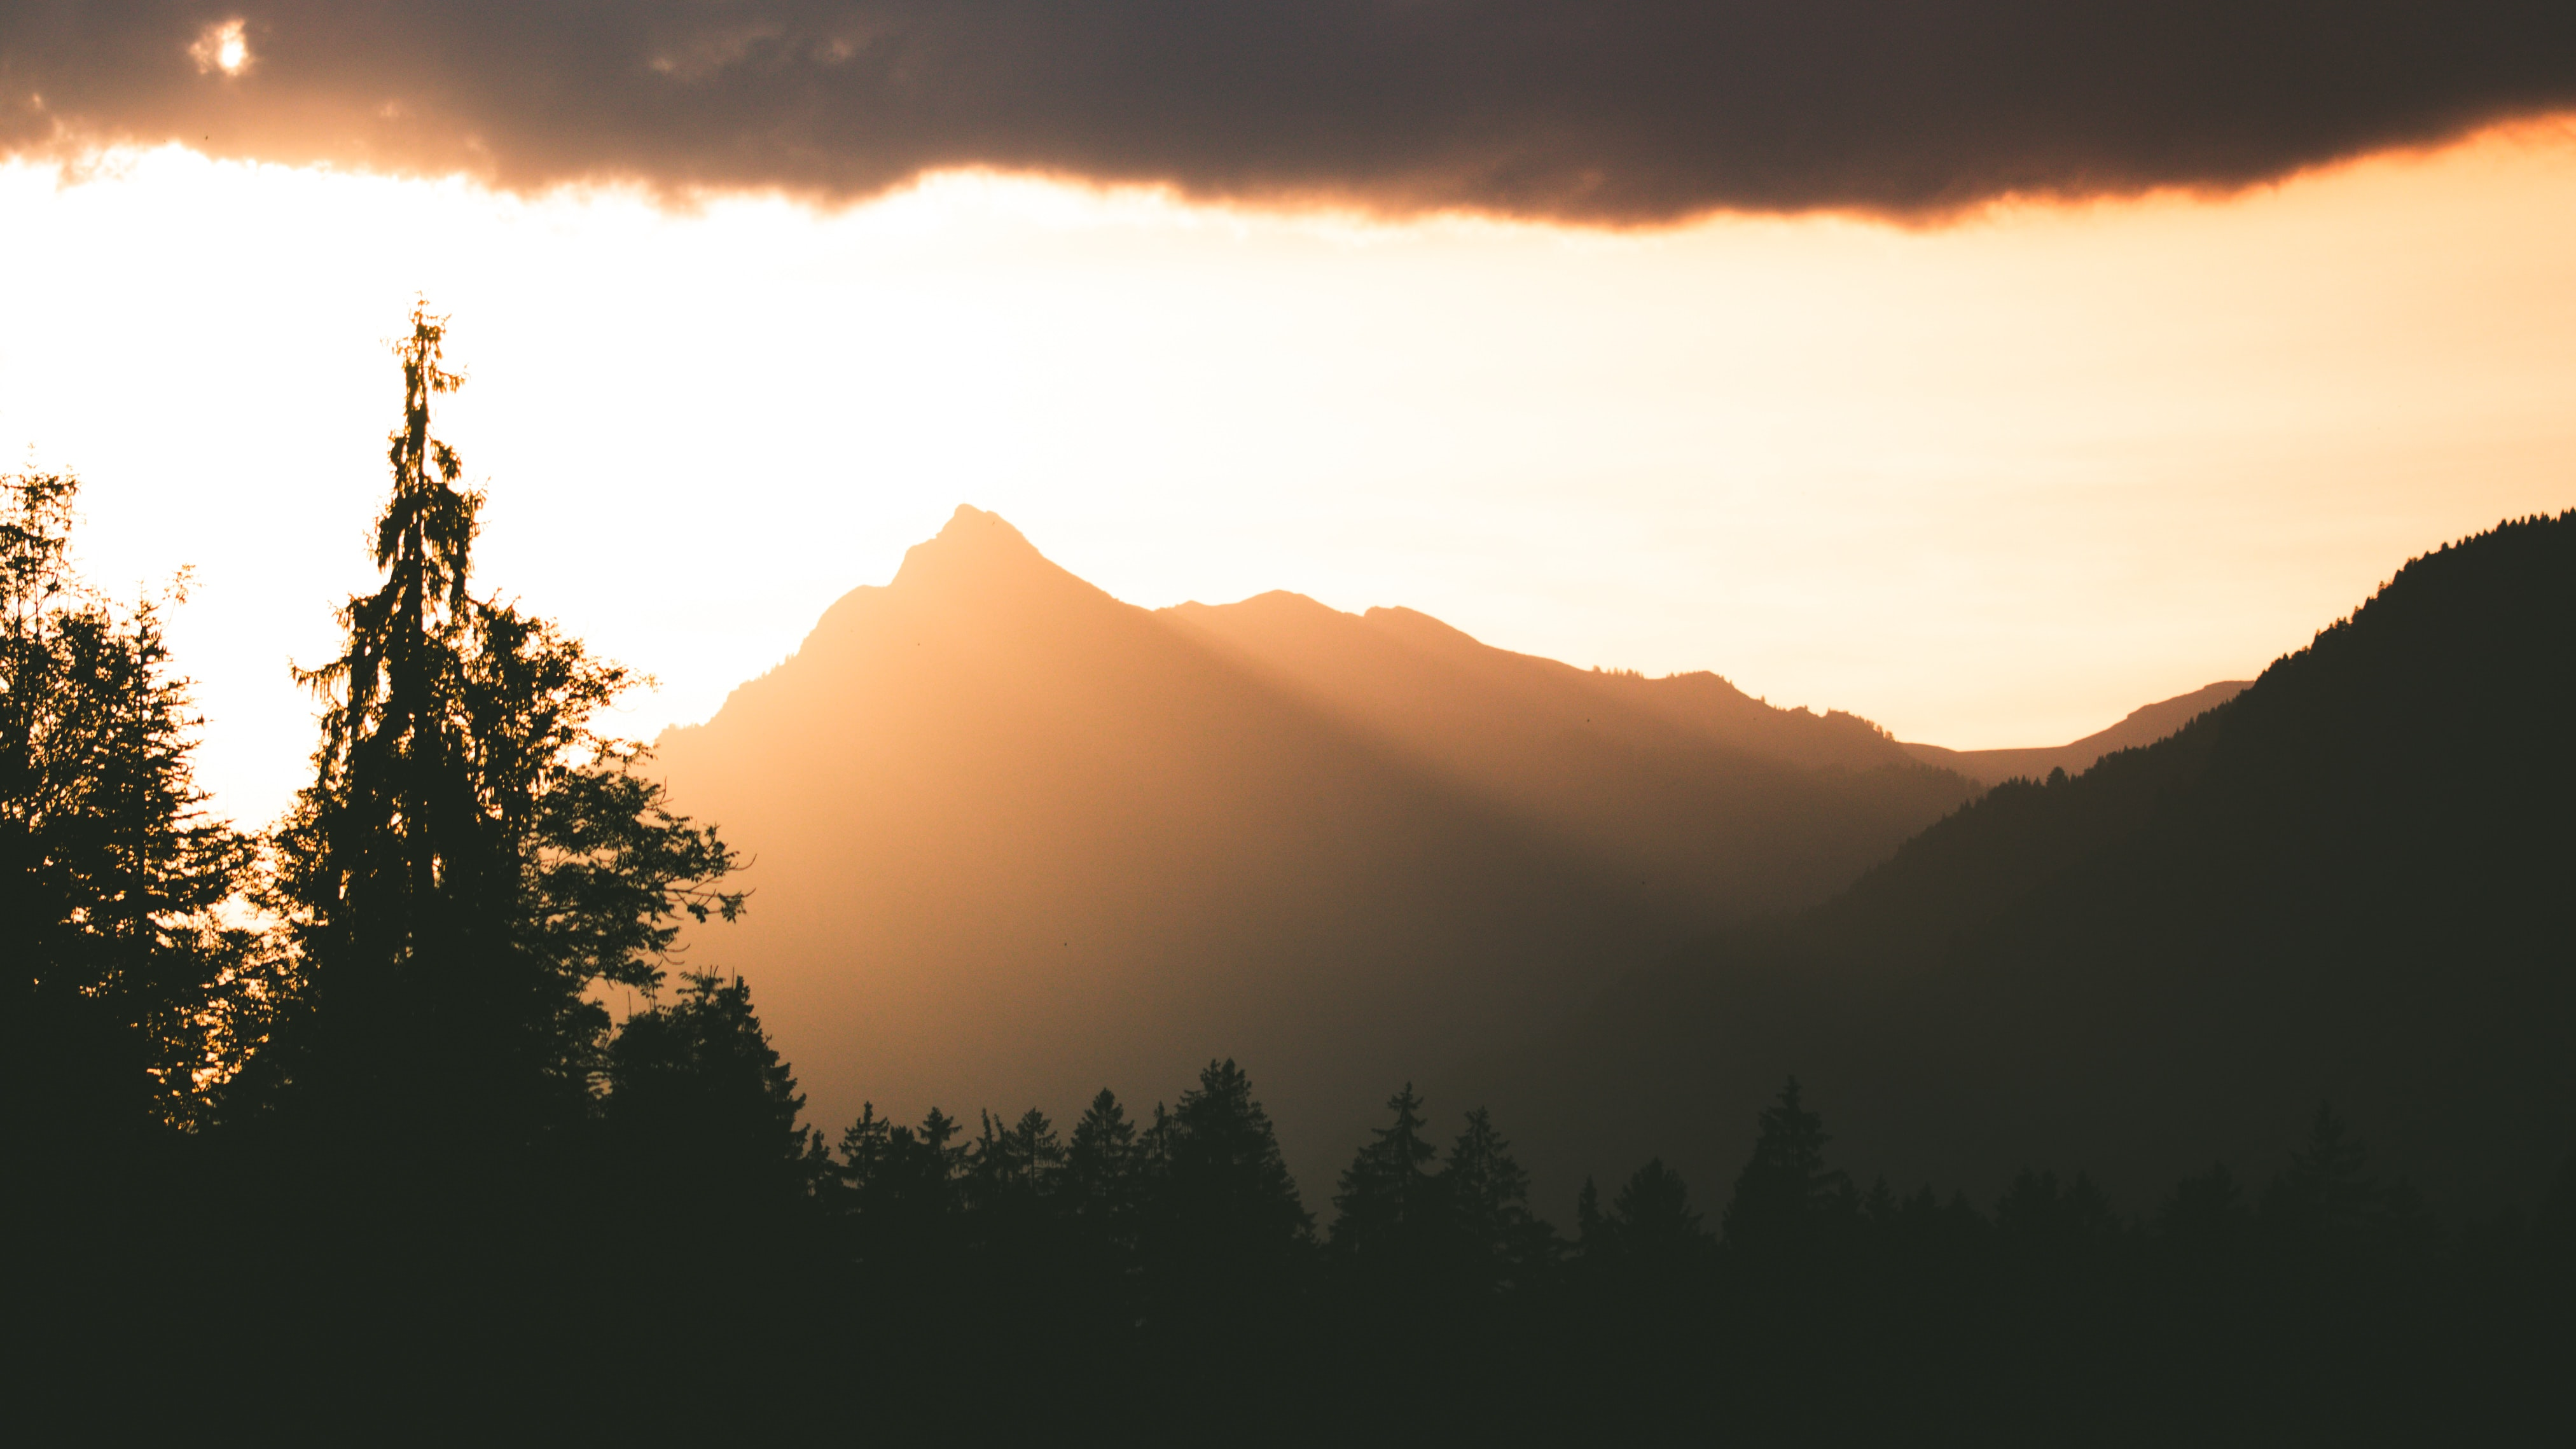 silhouette photography of mountain during golden hour